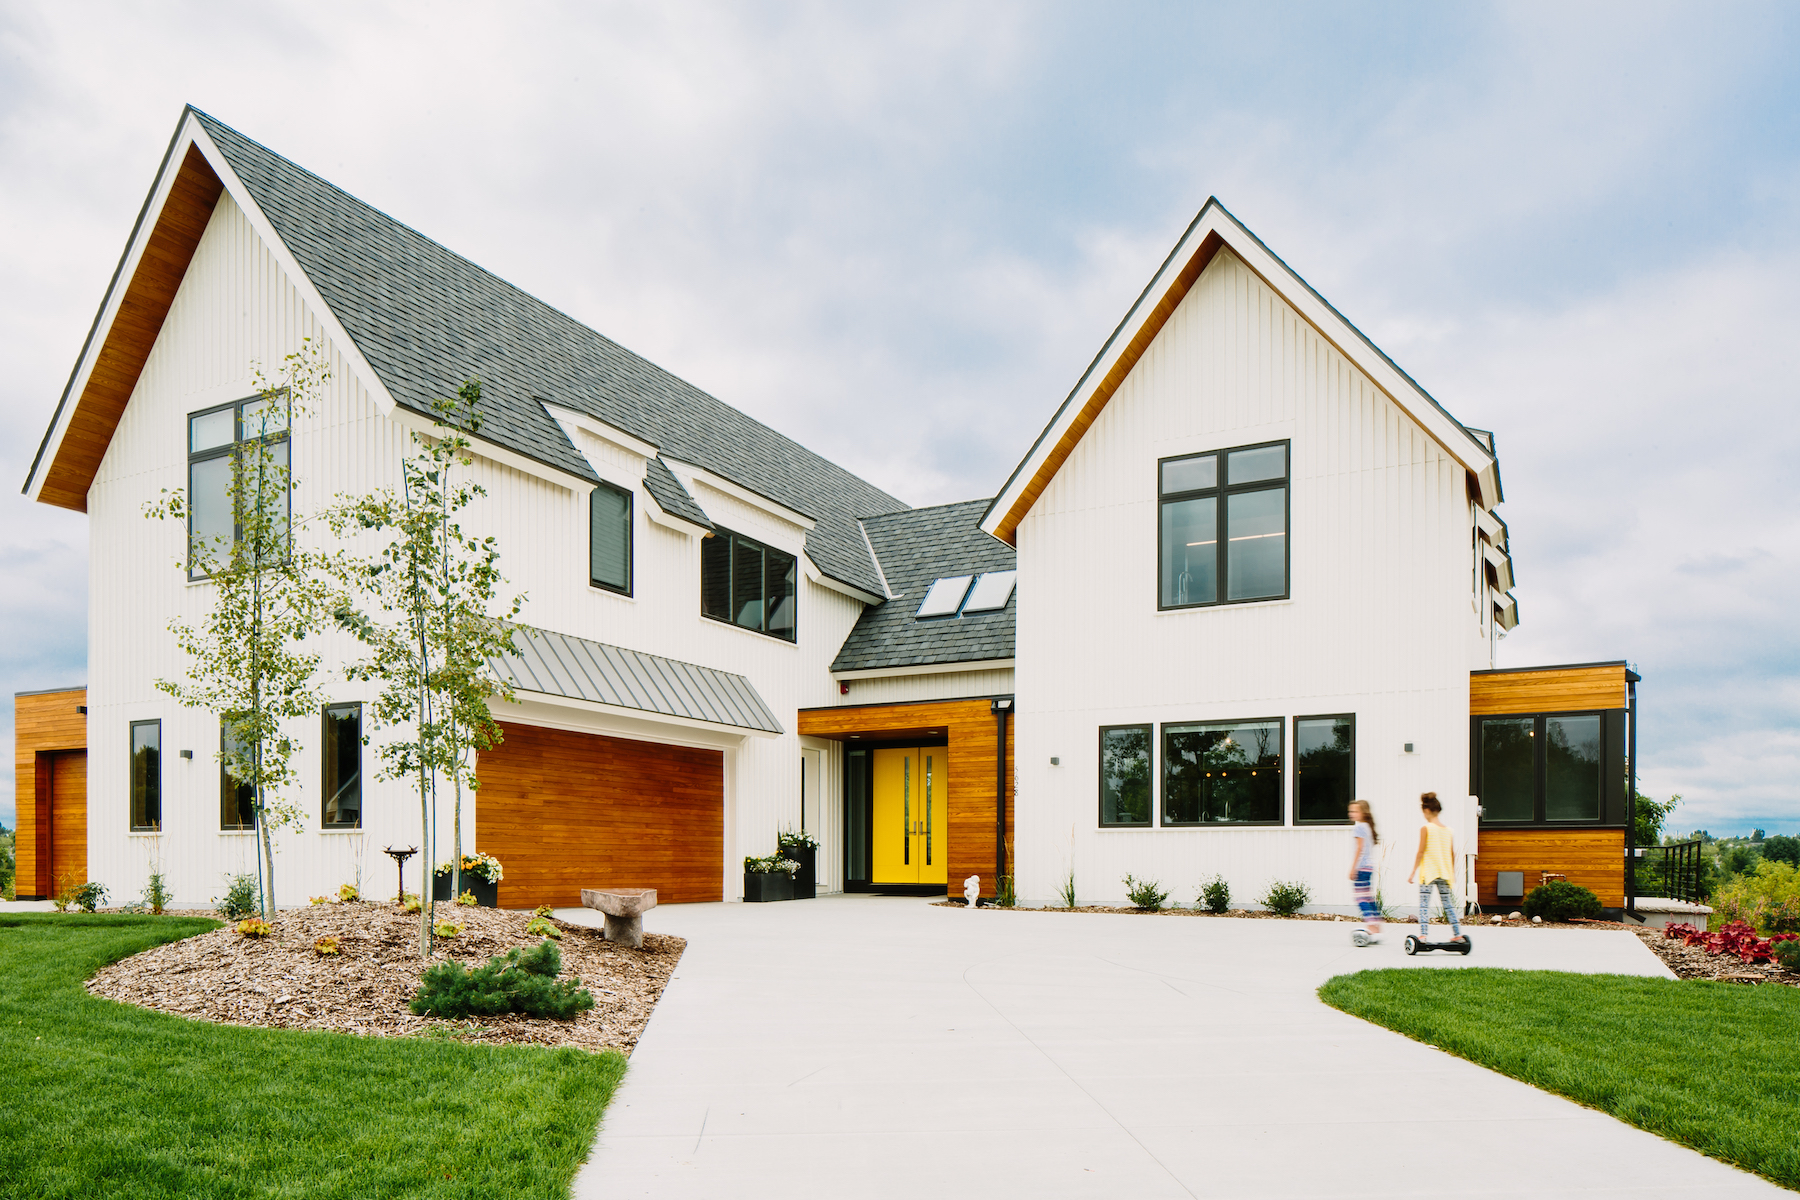 The 4,696-square-foot home features Uponor plumbing, fire sprinkler and radiant floor heating systems.